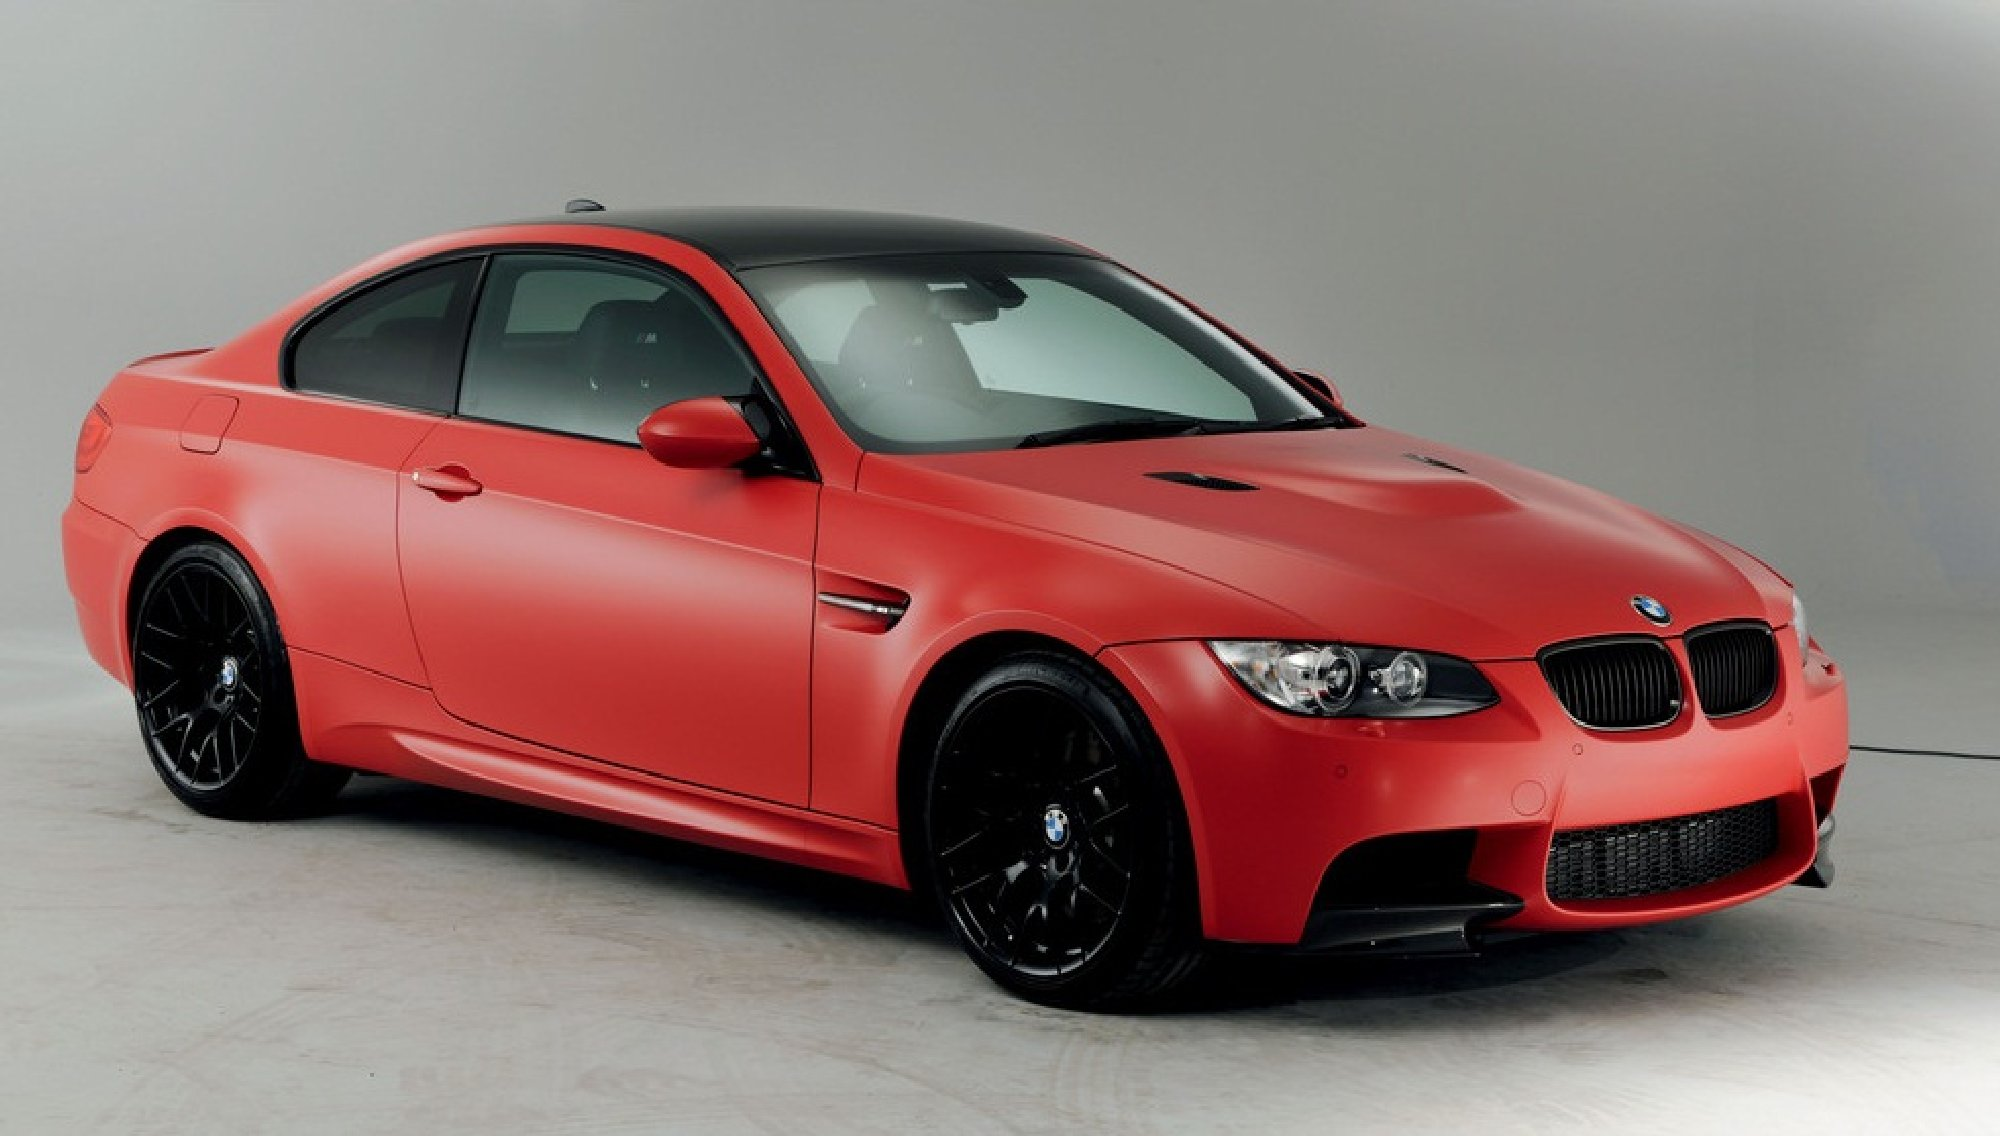 BMW M Review Amazing Pictures And Images Look At The Car - 2014 bmw m3